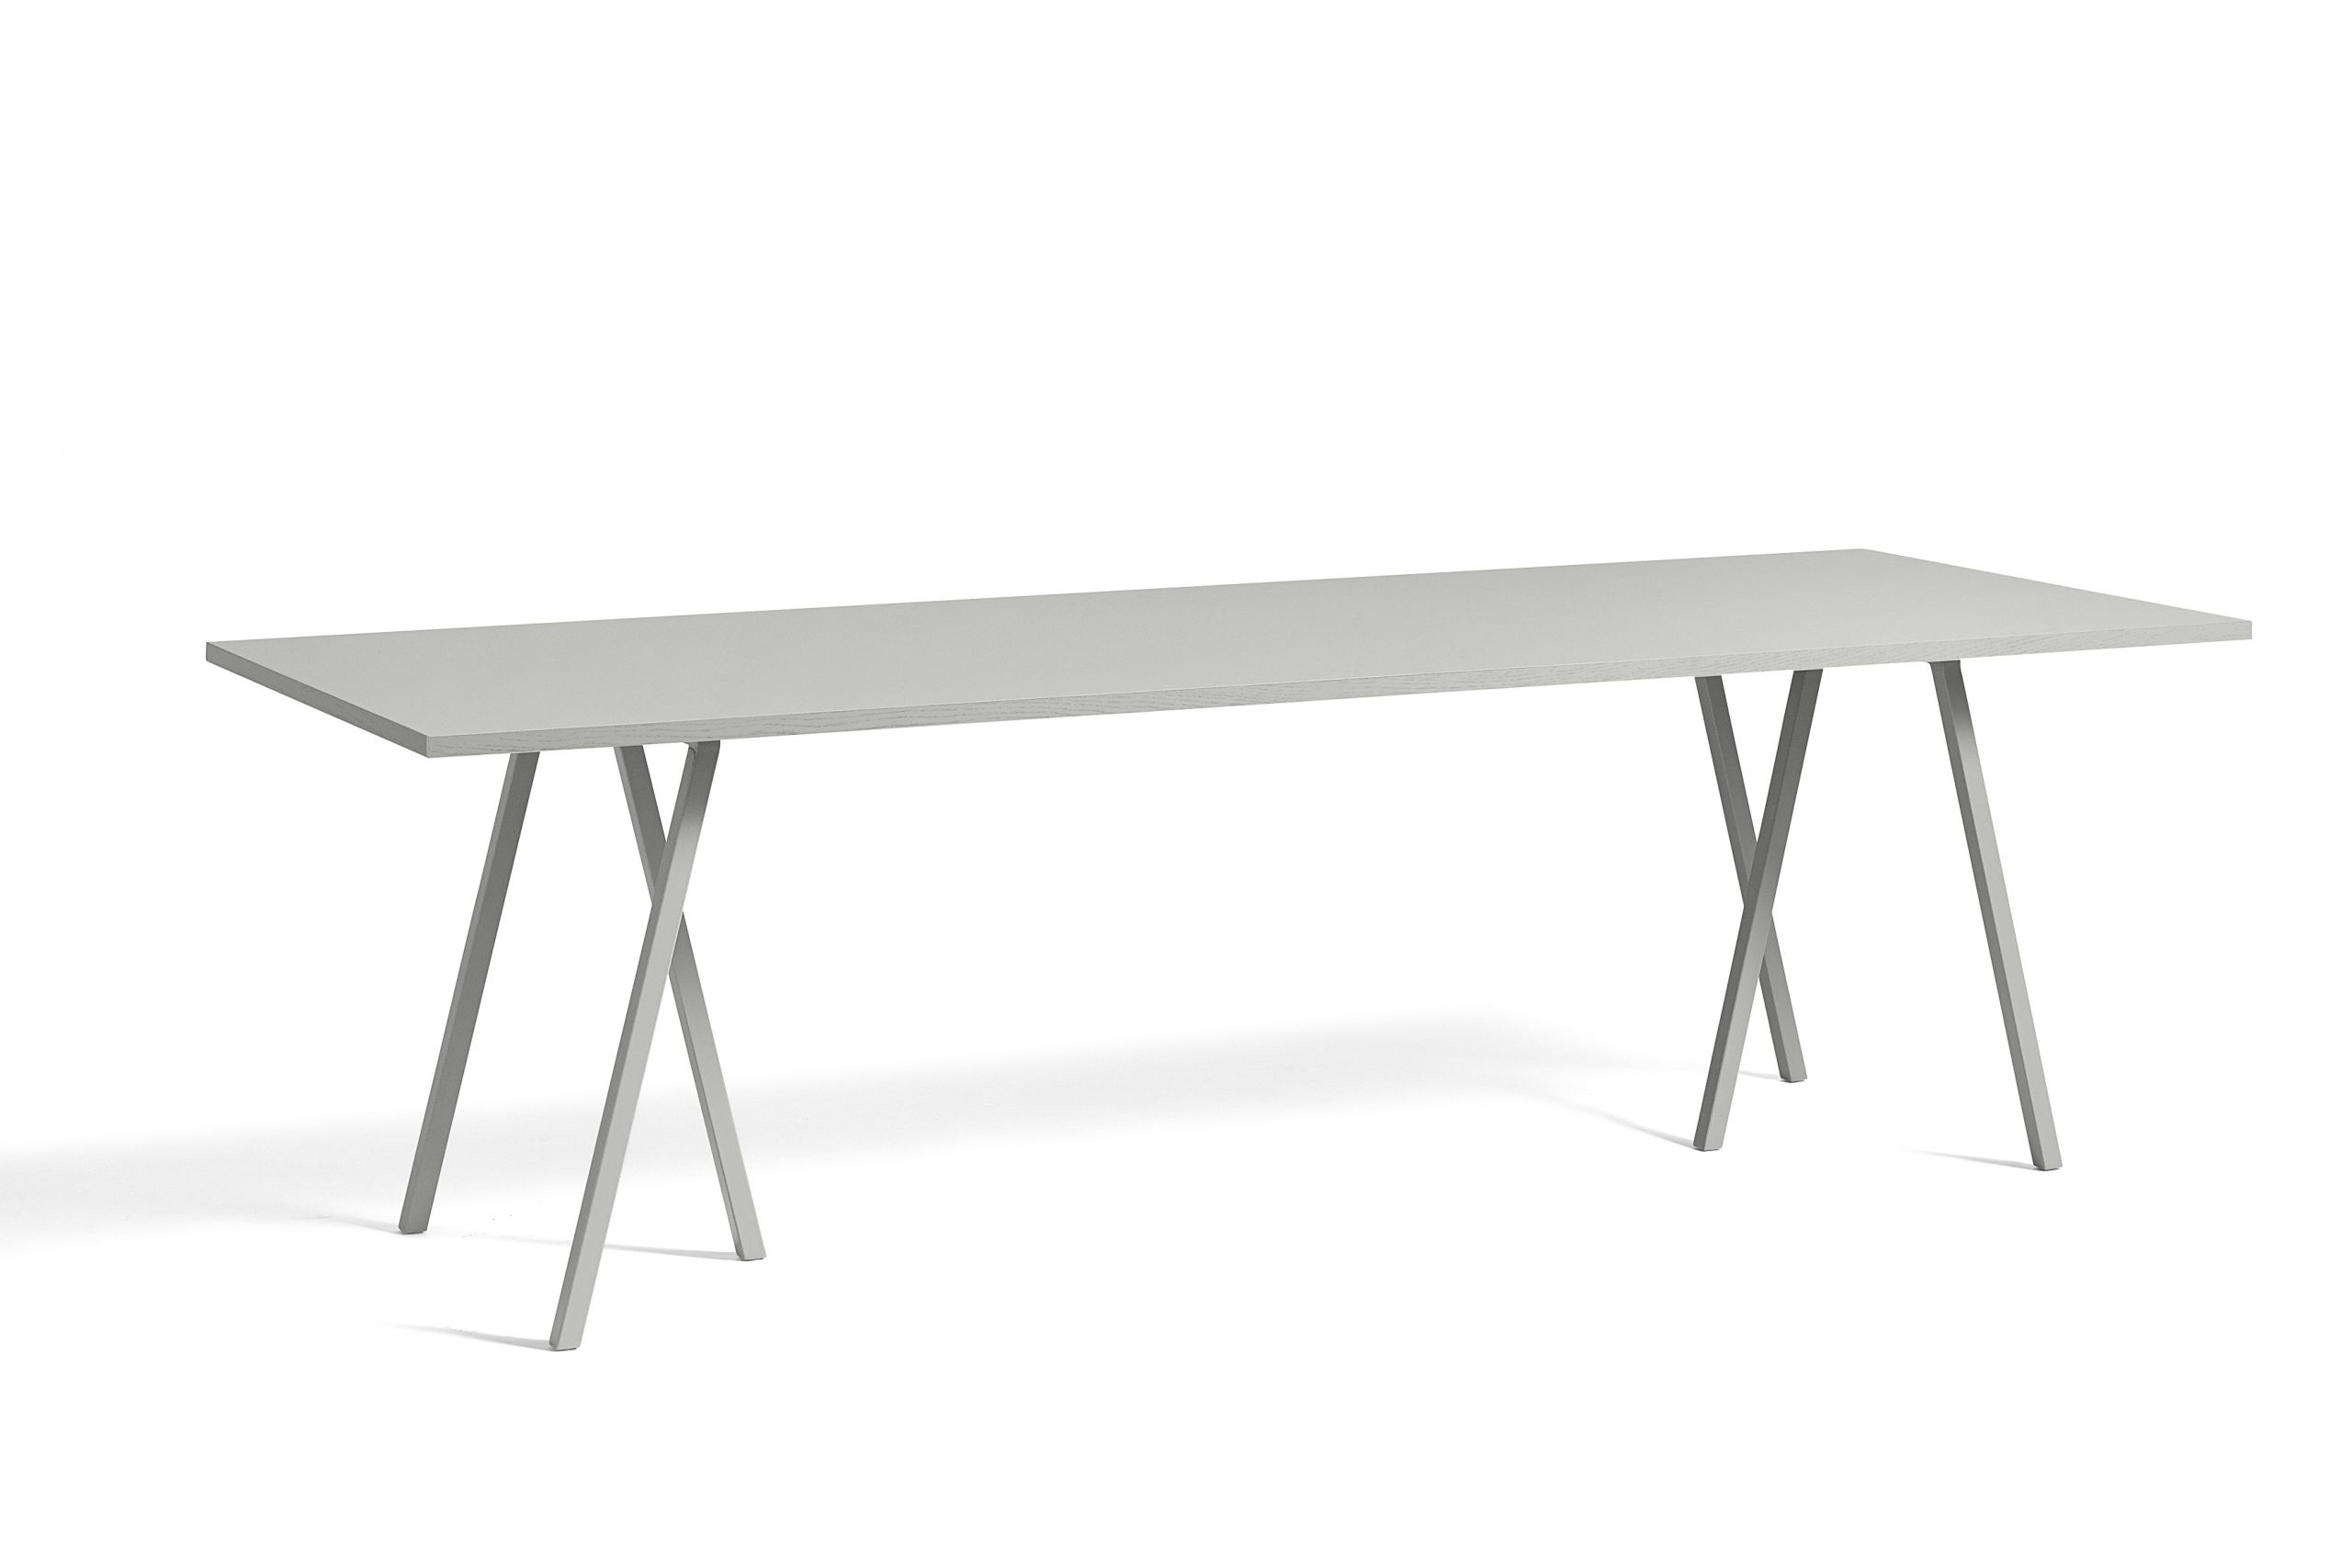 Loop stand table grey linolueum 250 cm